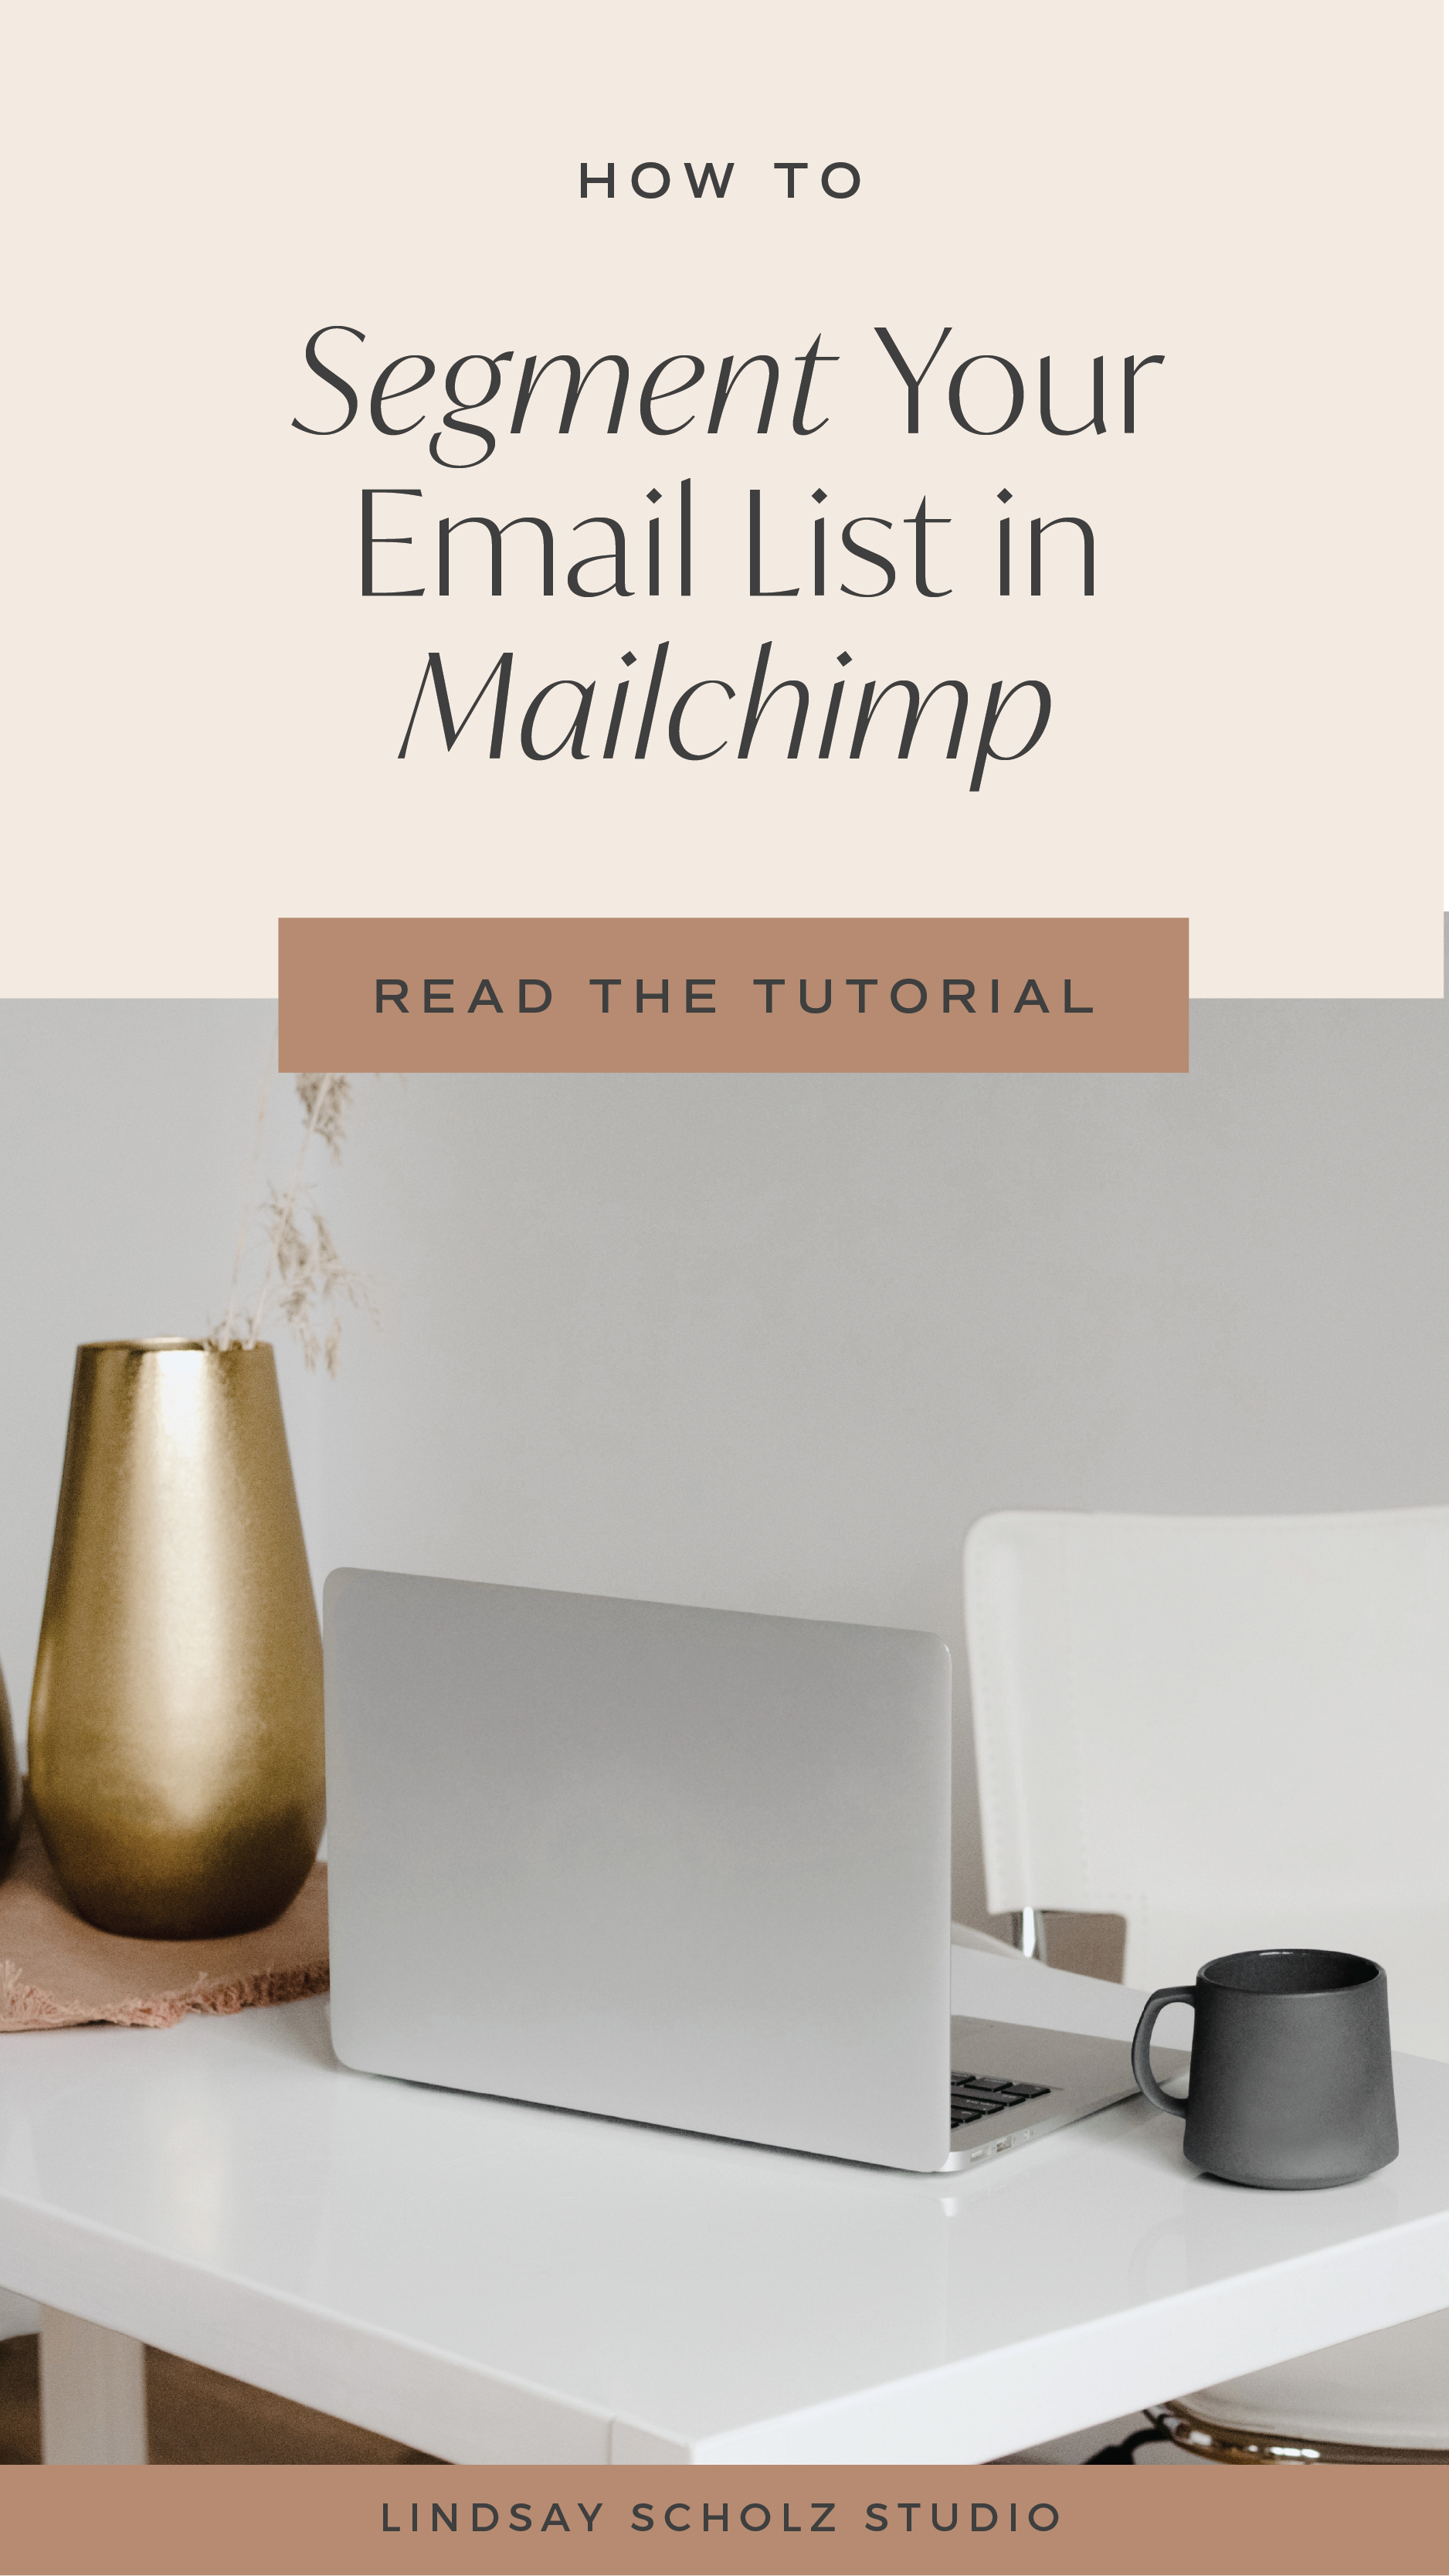 How To Segment Email Lists In Mailchimp Meet Our Top 3 Must Have Segments Lindsay Scholz Studio Creative Studio For Woman Owned Businesses Email Marketing Newsletter Email Marketing Strategy Email Marketing Platform